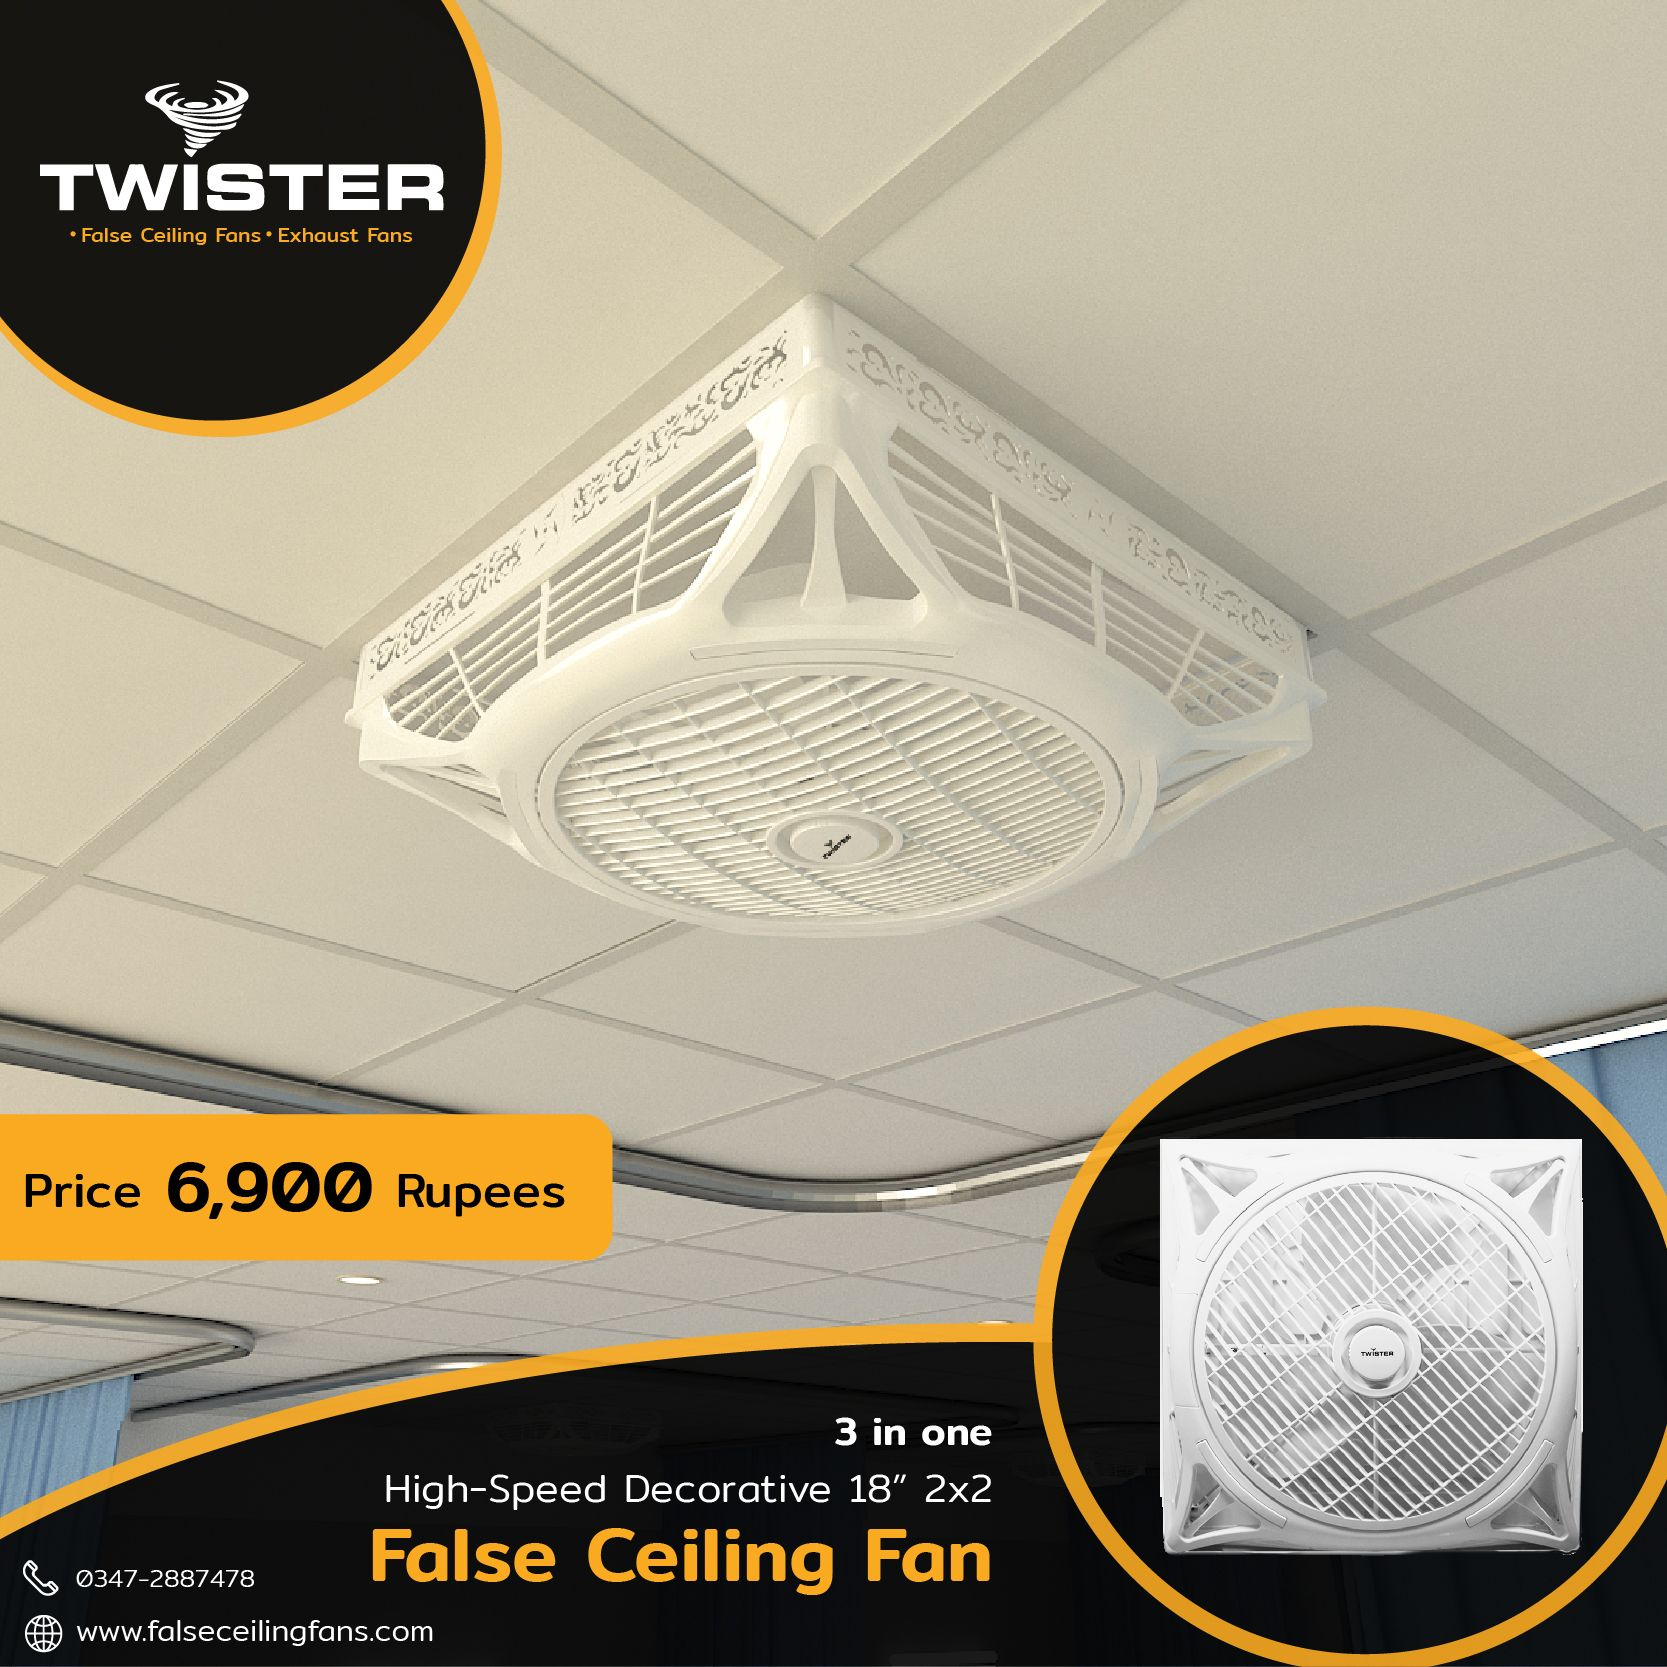 Twister False Ceiling Fan 18 Inch Price 6900 Free